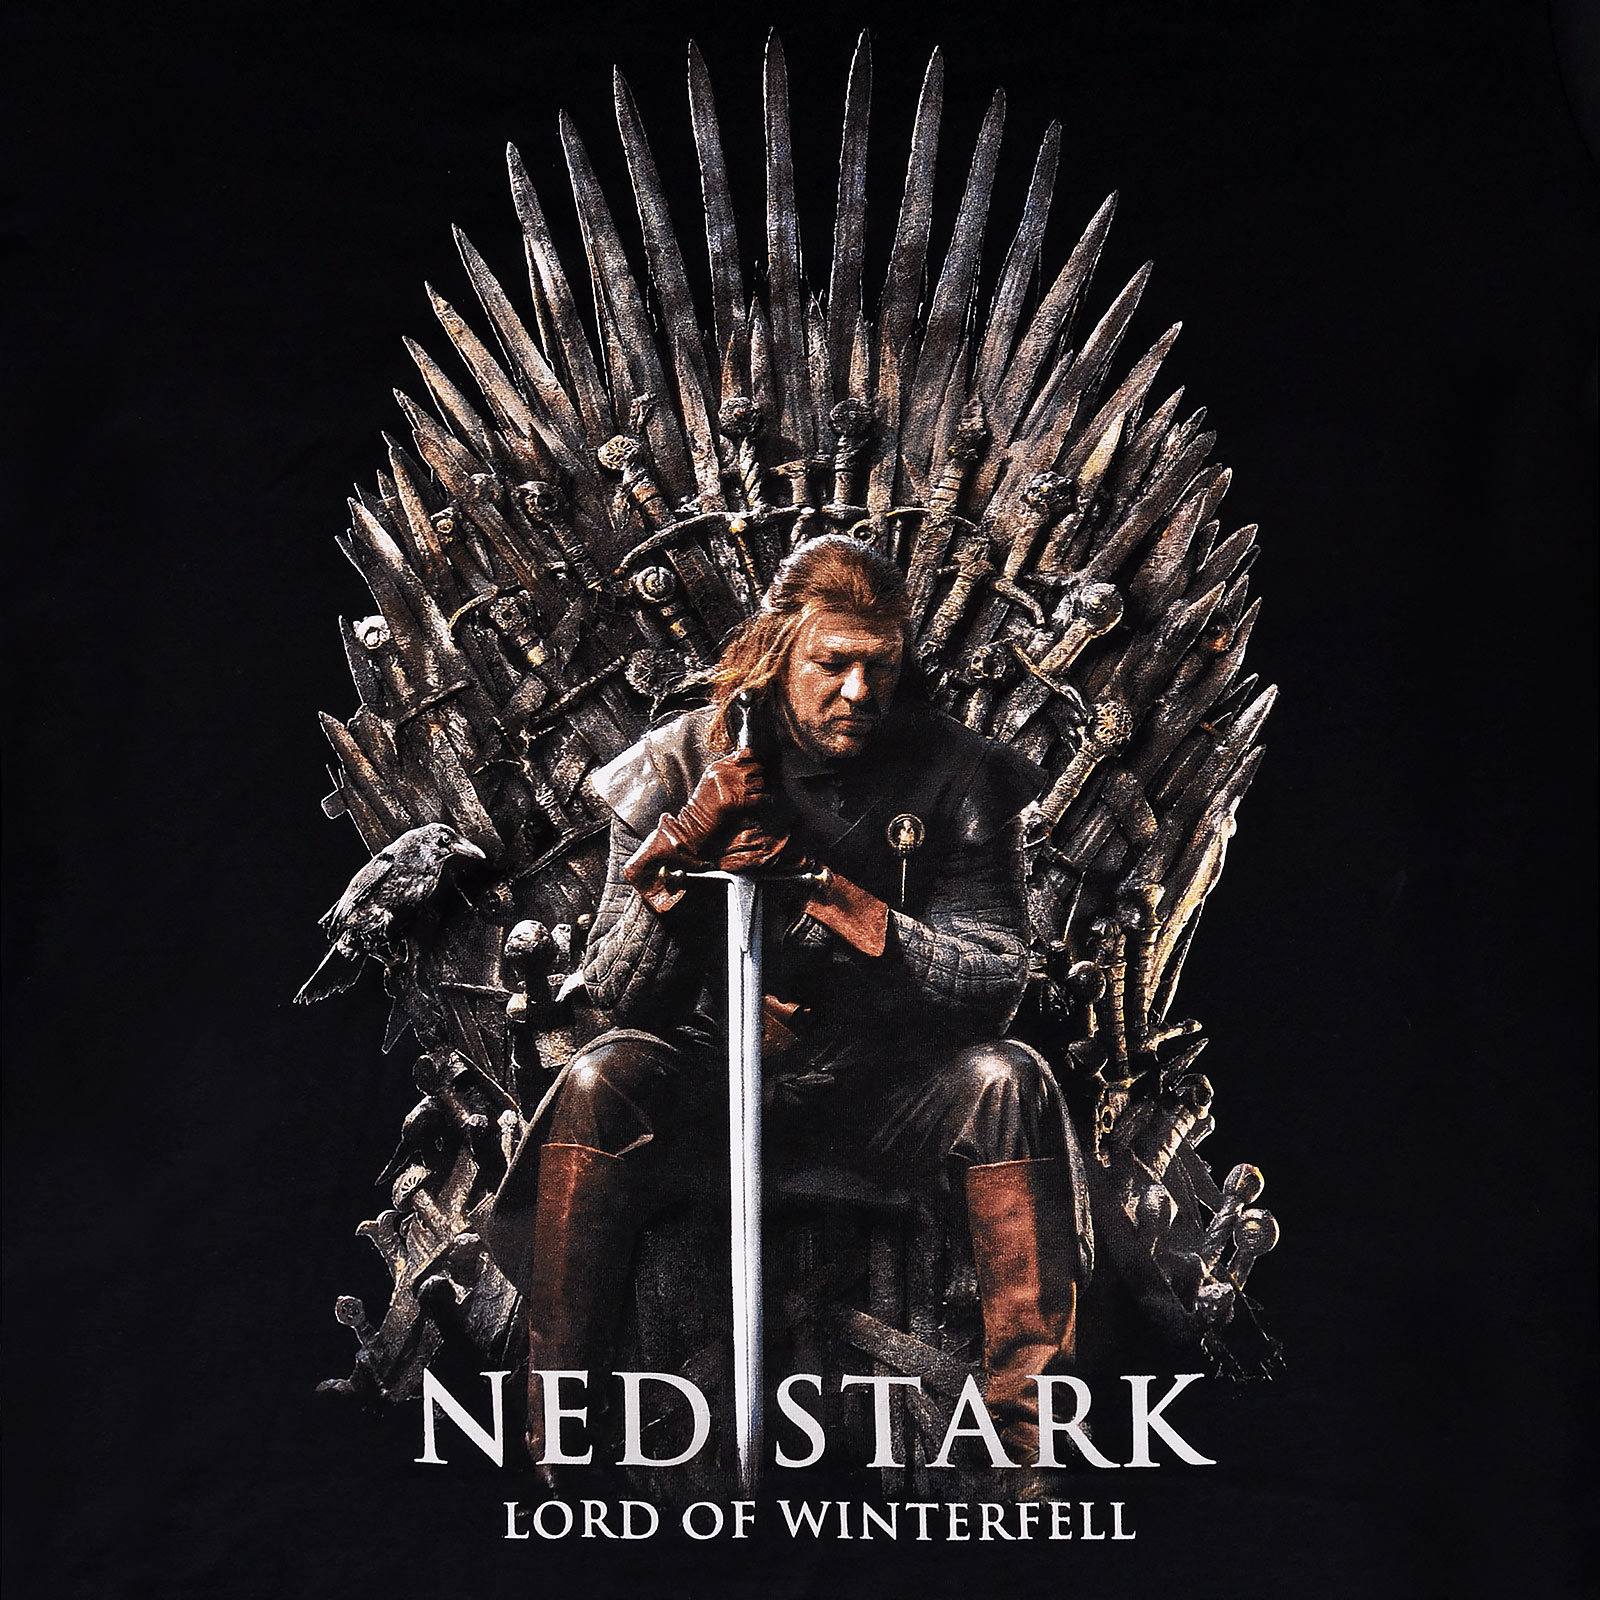 Ned Stark Lord of Winterfell T-Shirt - Game of Thrones